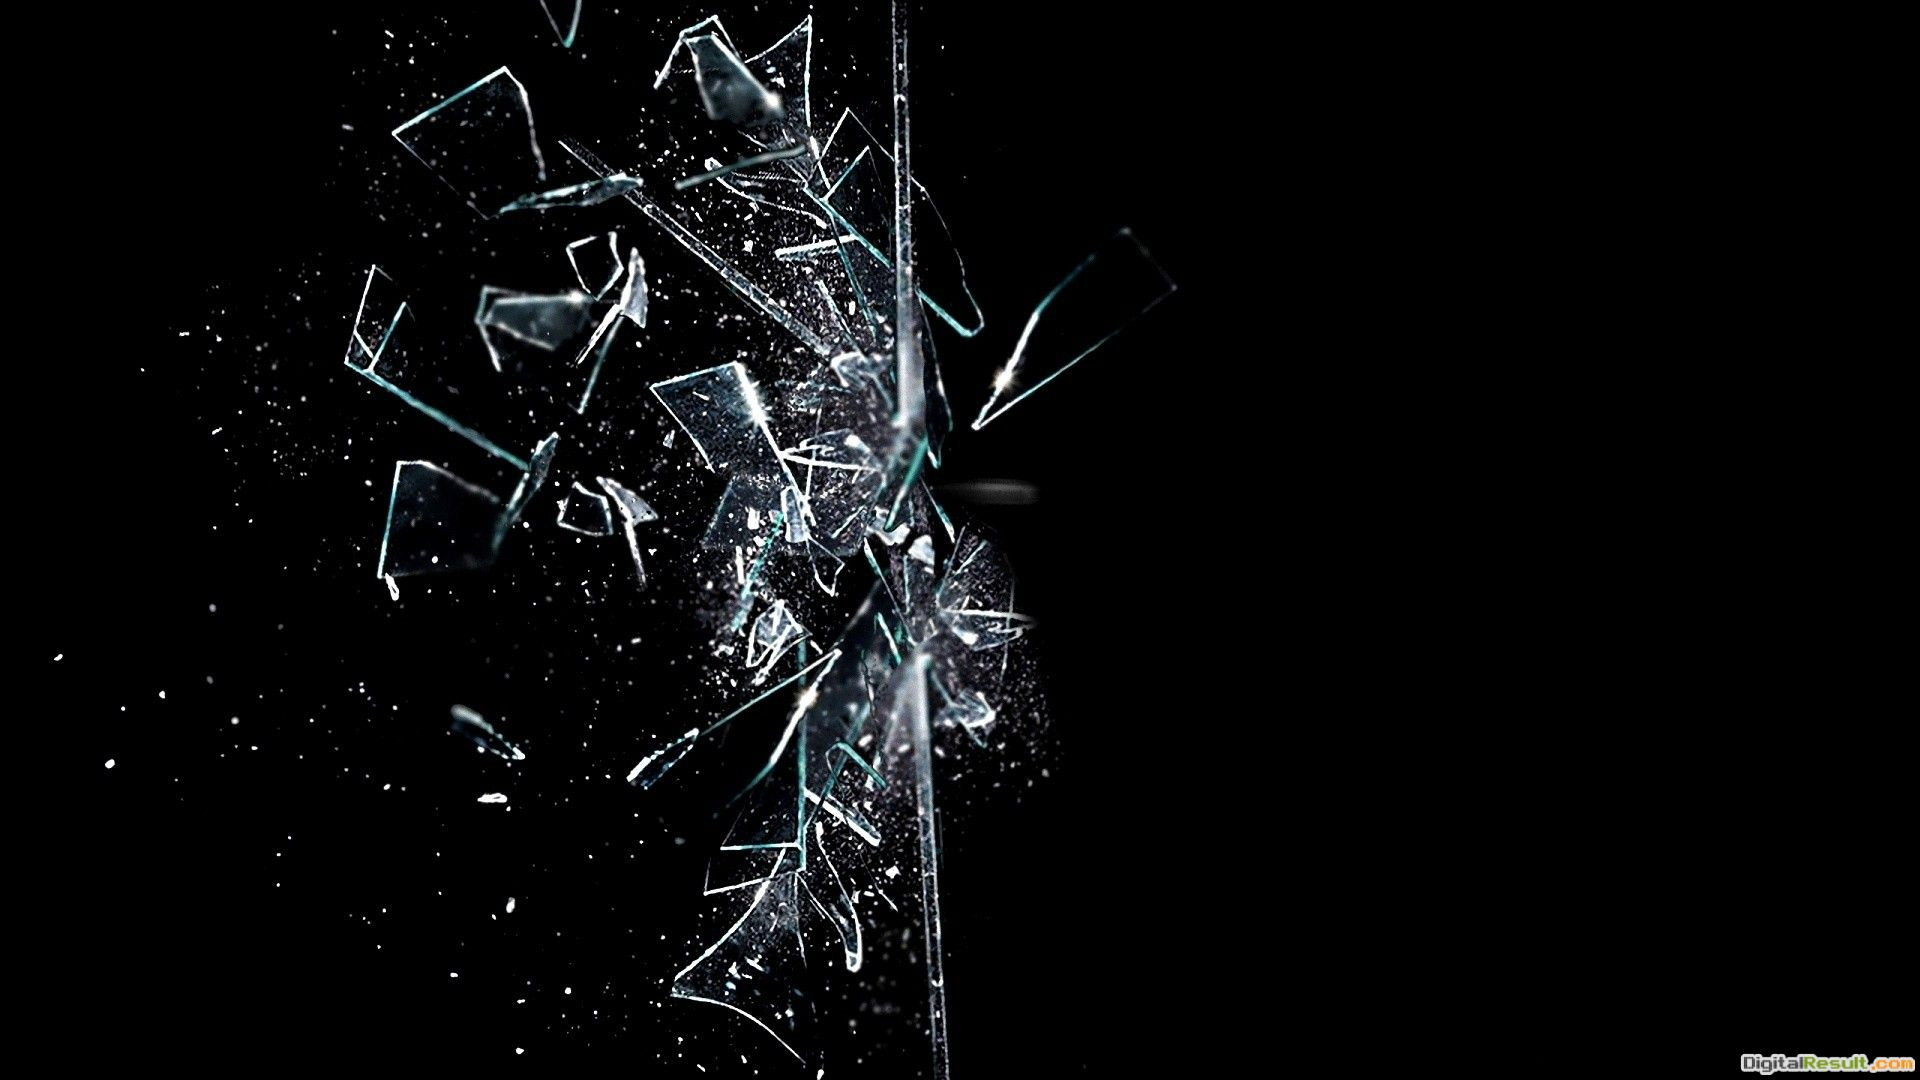 Broken Glass Wallpaper 1920x1080 Broken, Glass 1577